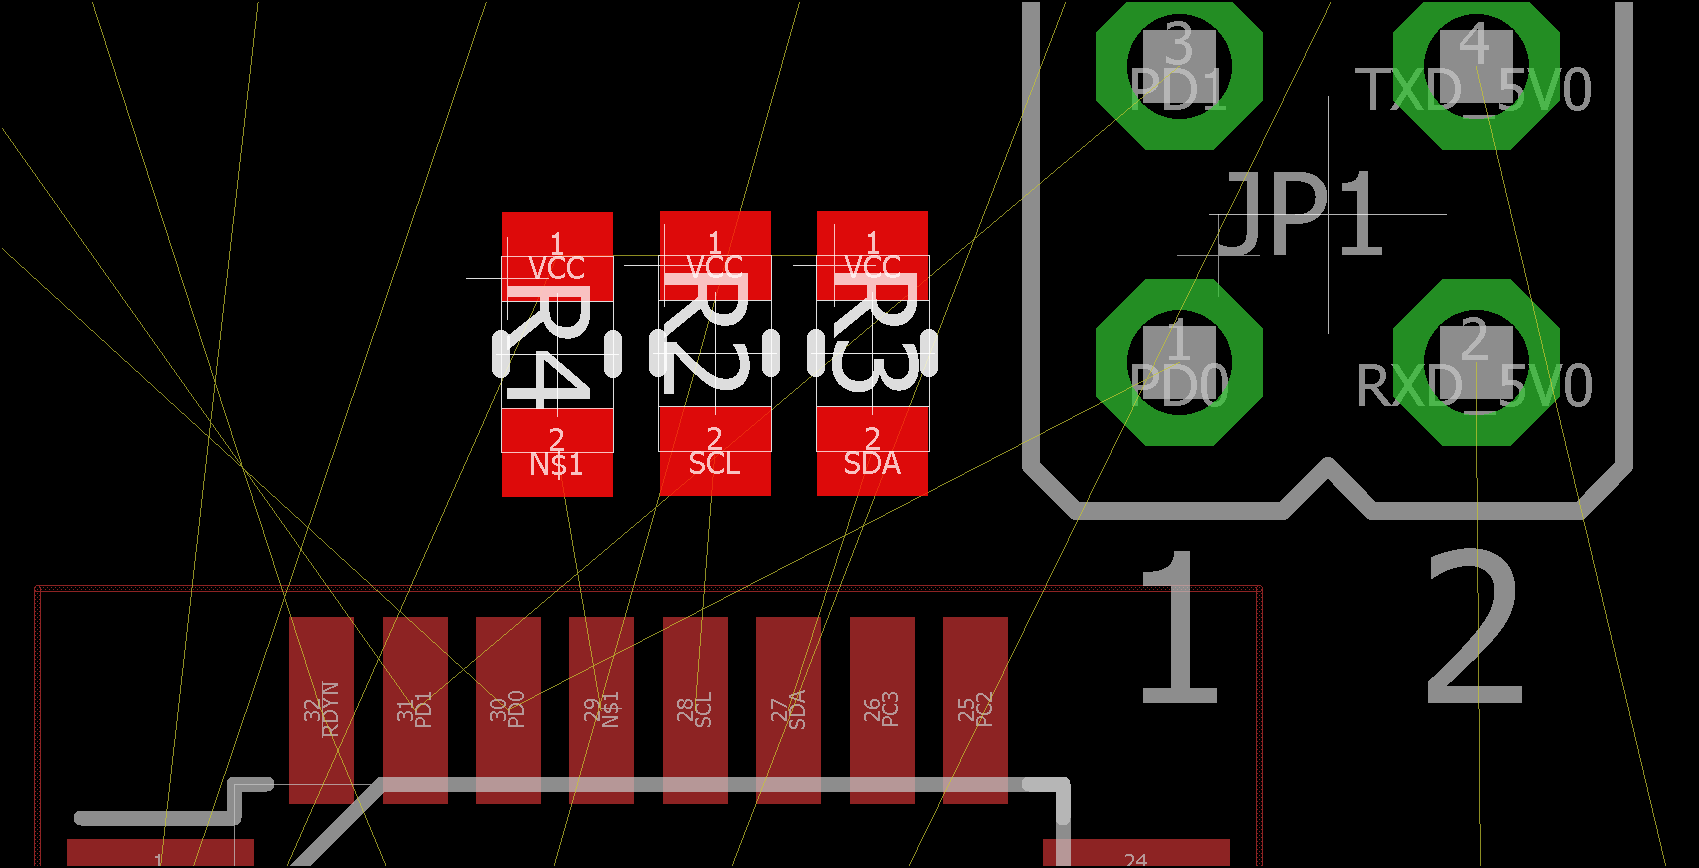 How To Use New Pcb Alignment Tools